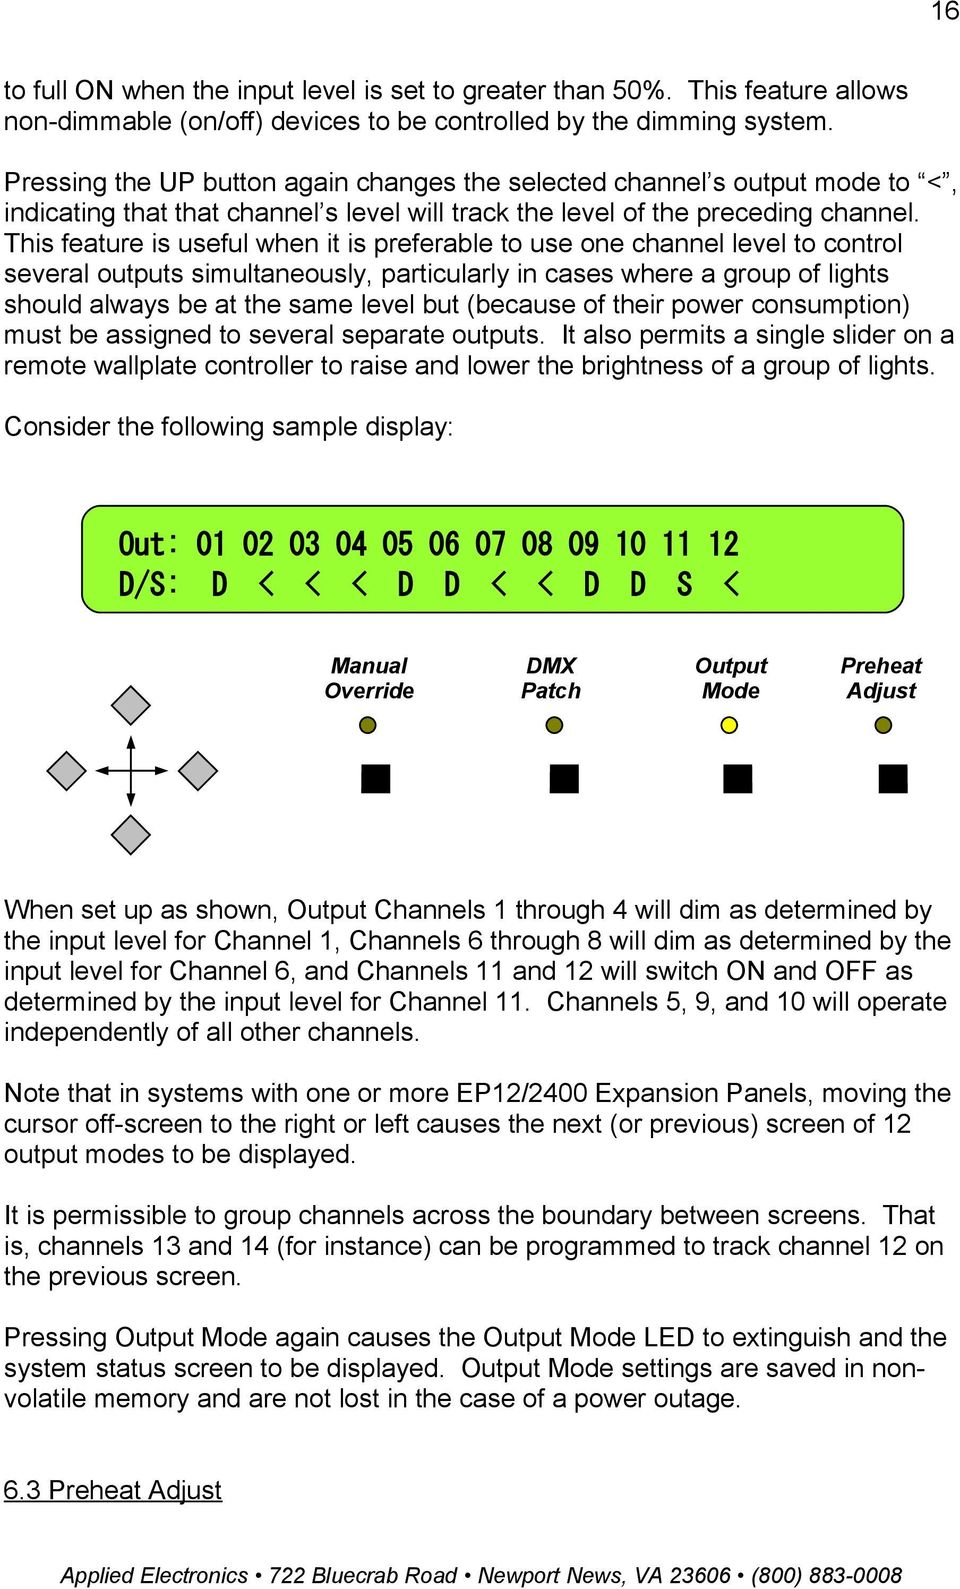 This feature is useful when it is preferable to use one channel level to control several outputs simultaneously, particularly in cases where a group of lights should always be at the same level but